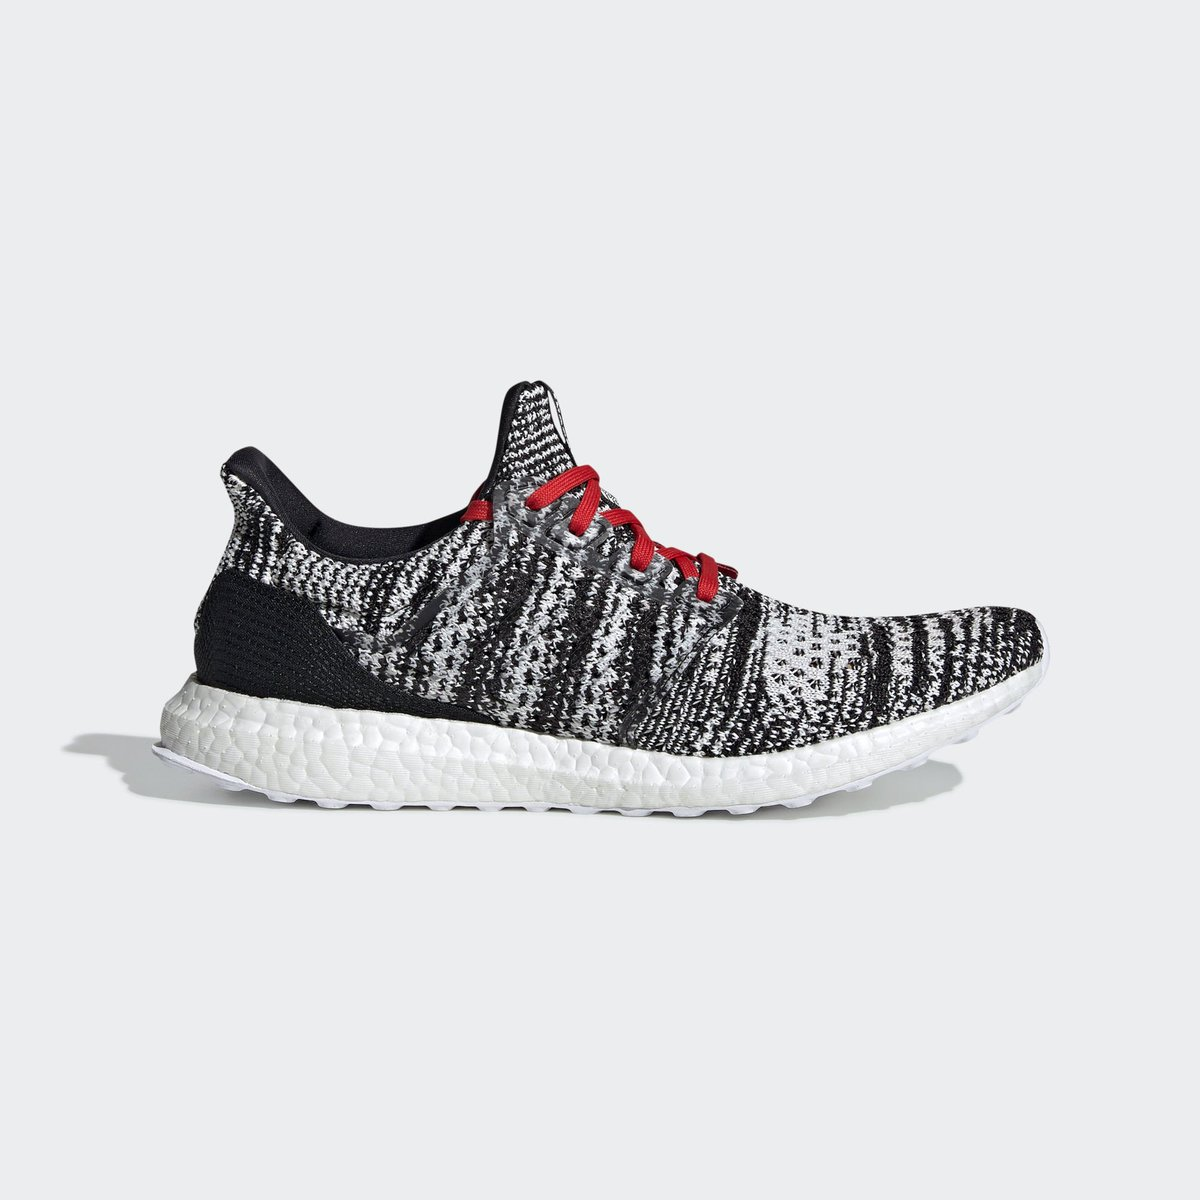 d4ef2e66c2c0c ... knit patterns to the Ultra Boost Clima